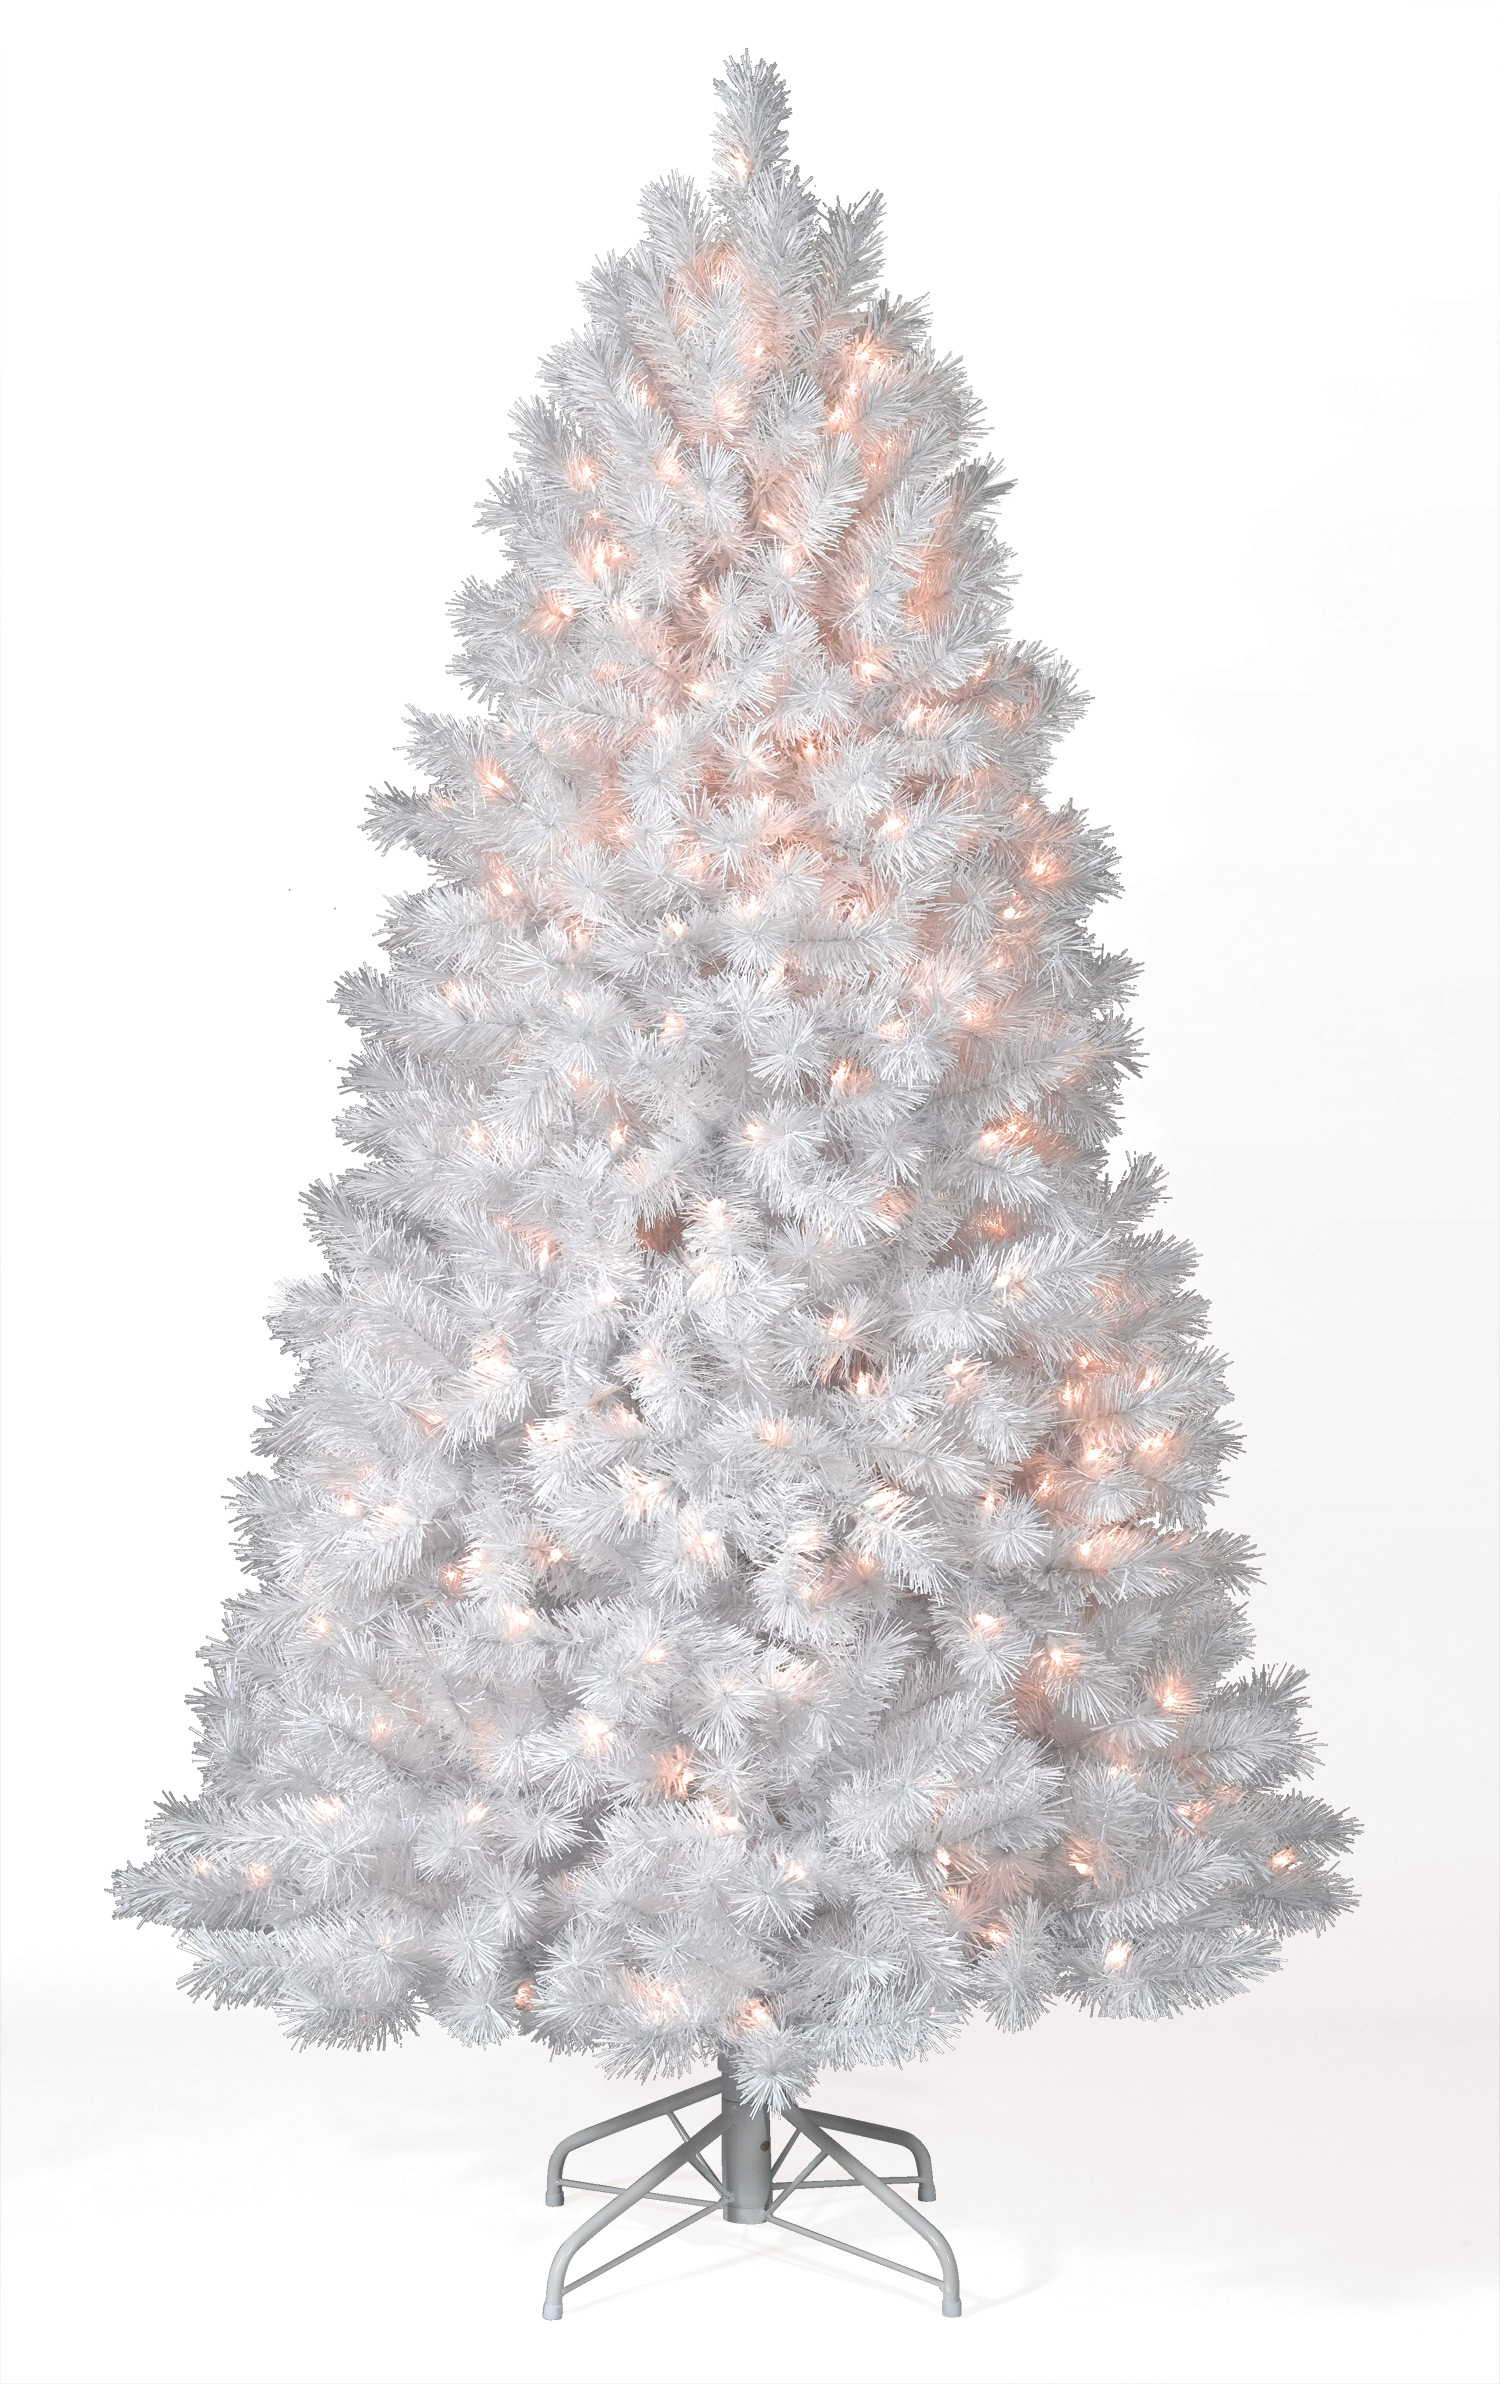 10 ft Shimmering White Clear Lit Tree | Christmas Tree Market